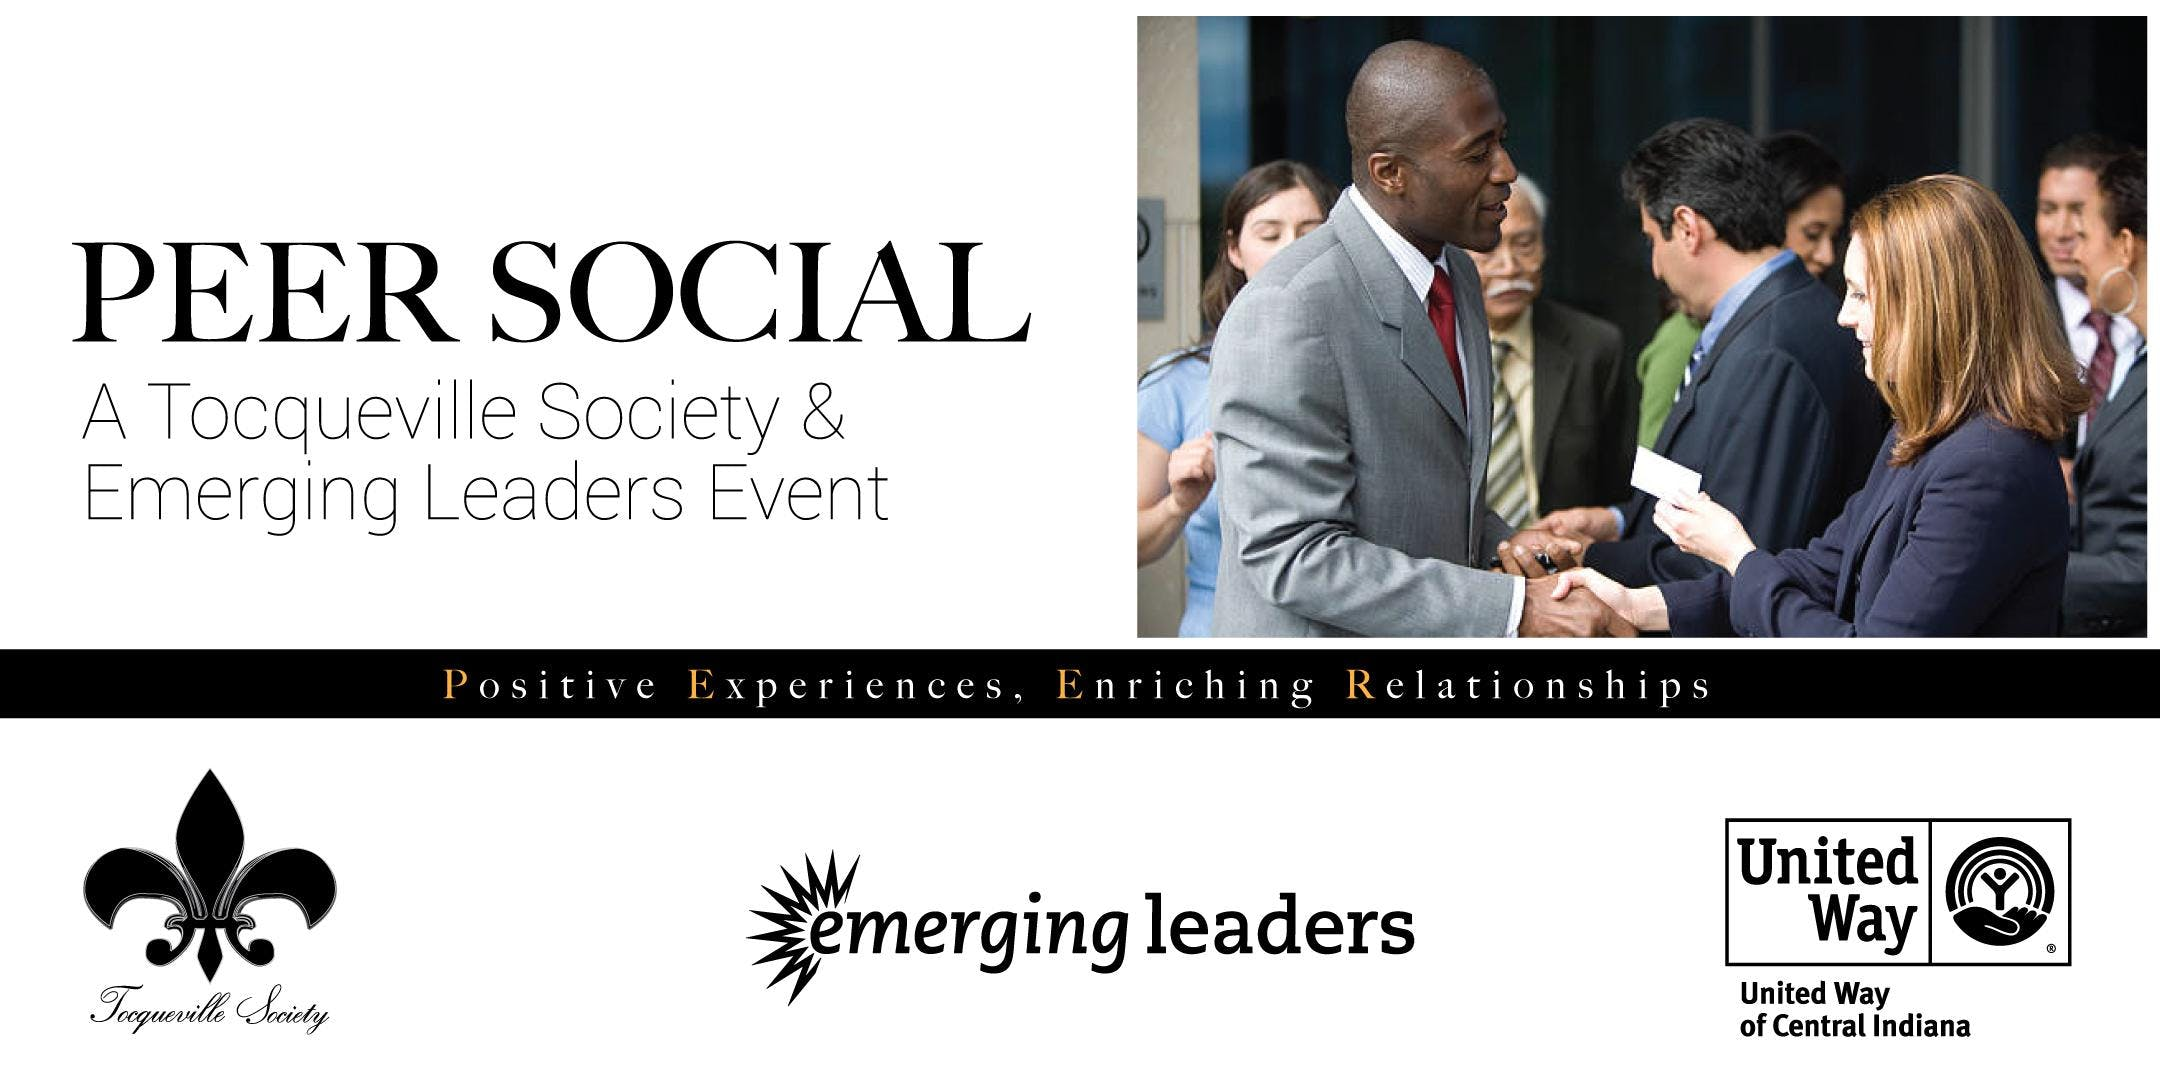 PEER Social: A Tocqueville Society and Emergi